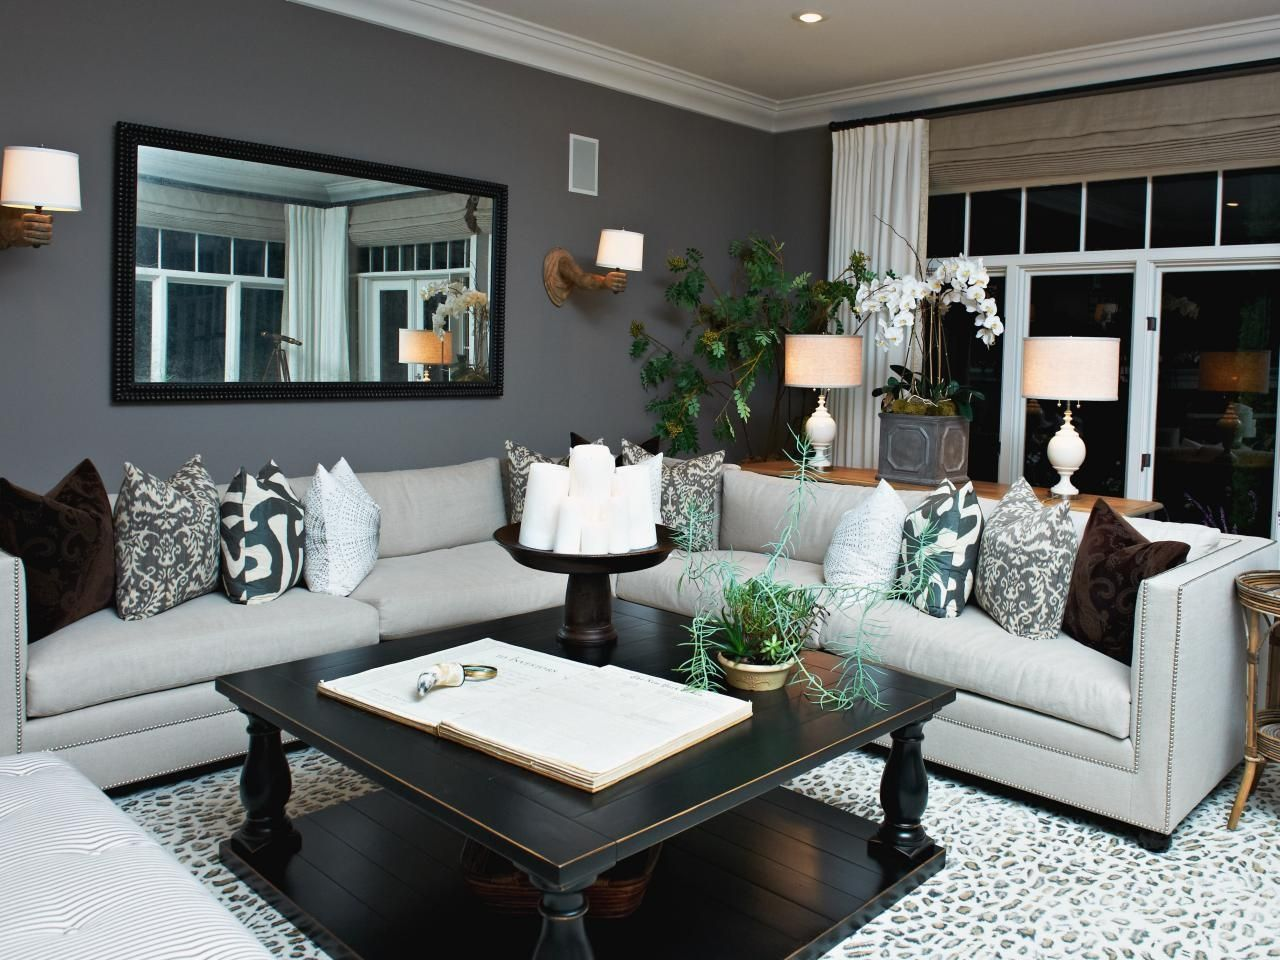 Cozy Living Room Ideas | See More At Http://diningandlivingroom.com/cozy  Living Room Ideas Home Decoration/